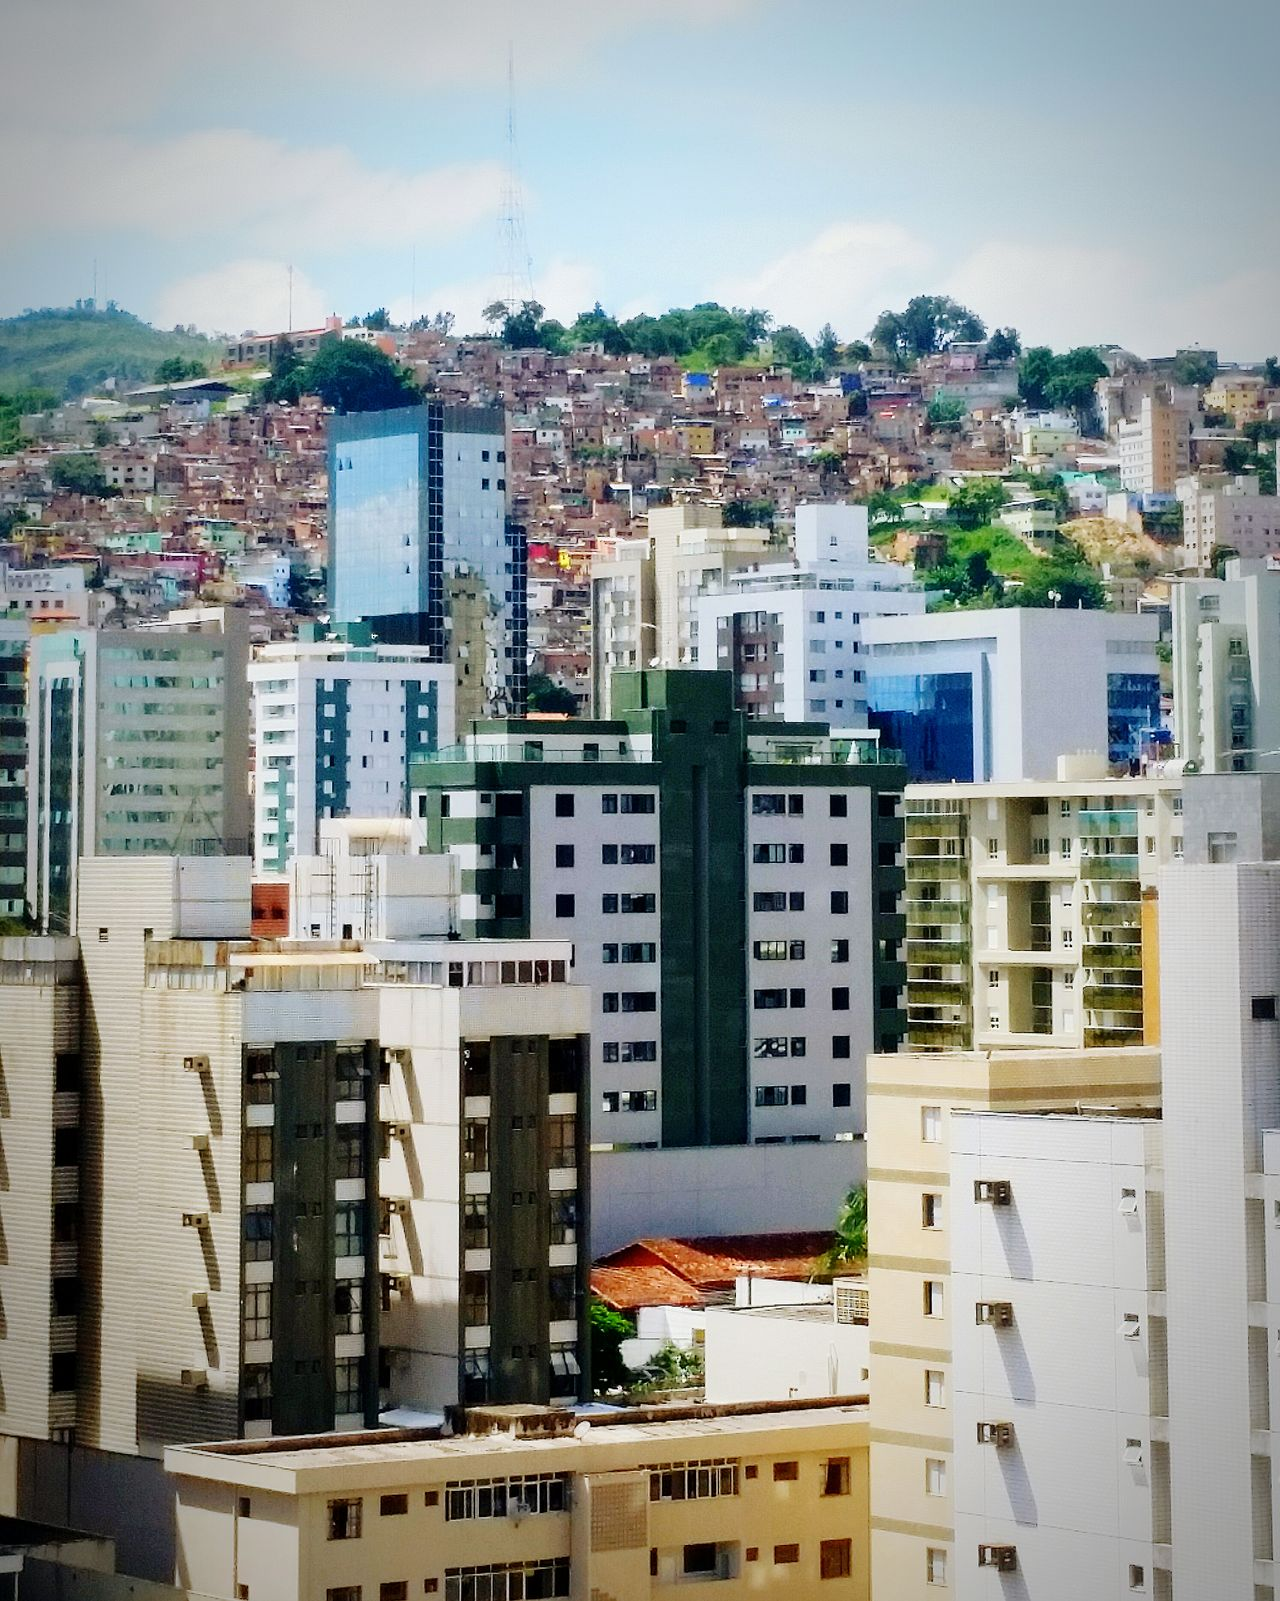 I was not chasing quality at all in this pic, just to give people an idea about social inequality in Brazil ... Social Inequality Rich Poor  Classes Desigualdade Desigualdad Favela Favelabrazil Belo Horizonte Comparison Compare Day Manhã Dia Tarde  Afternoon Evening Brazil